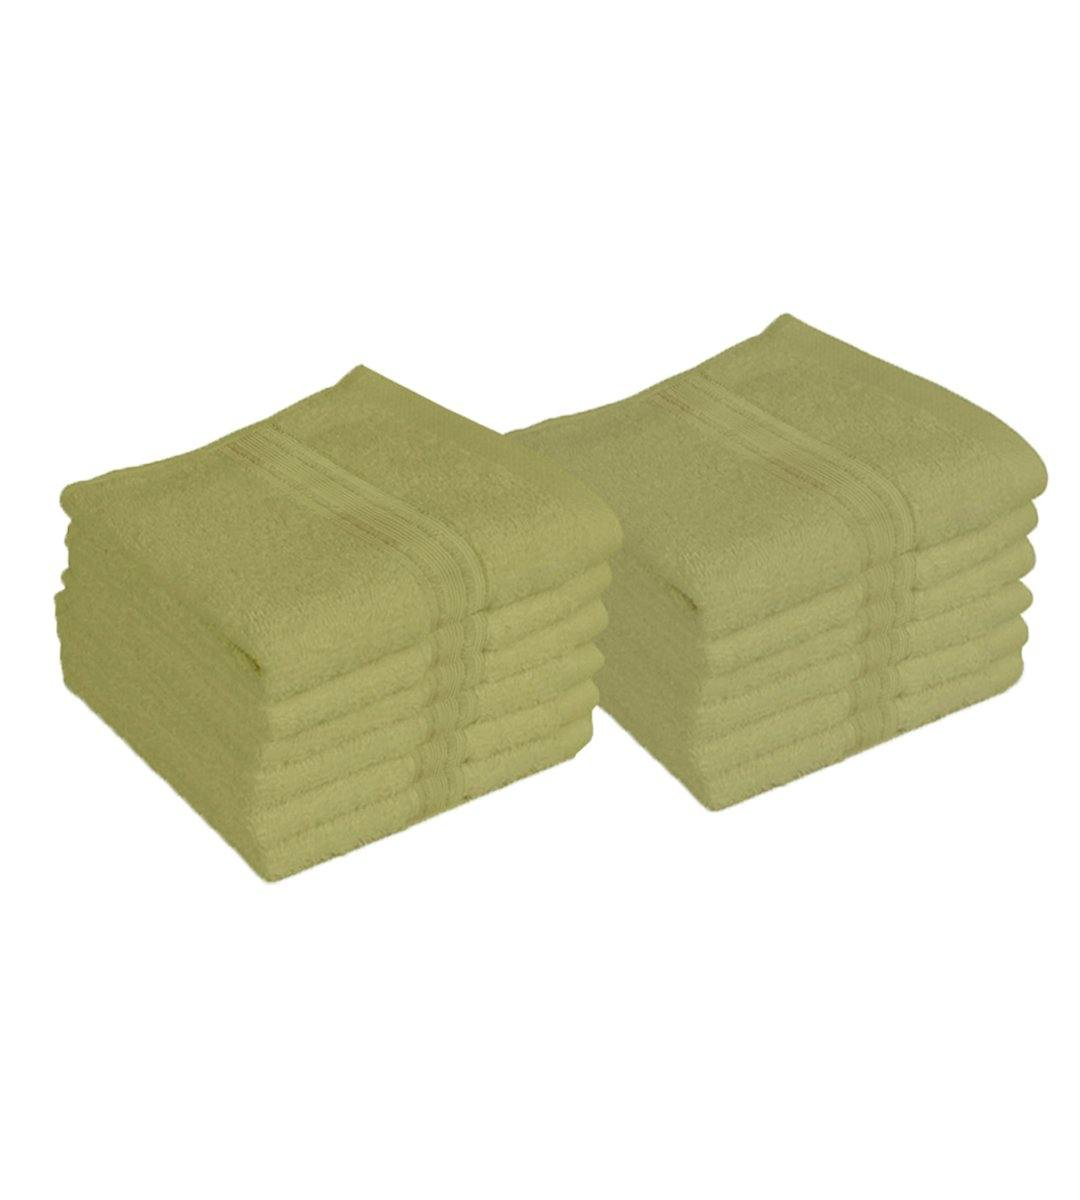 "Lushomes Shadow Green Super Soft and Fluffy Cotton Face Cloth Towel (Size 12 x 12""•À?, Pack of 12 Pcs, 450 GSM)"